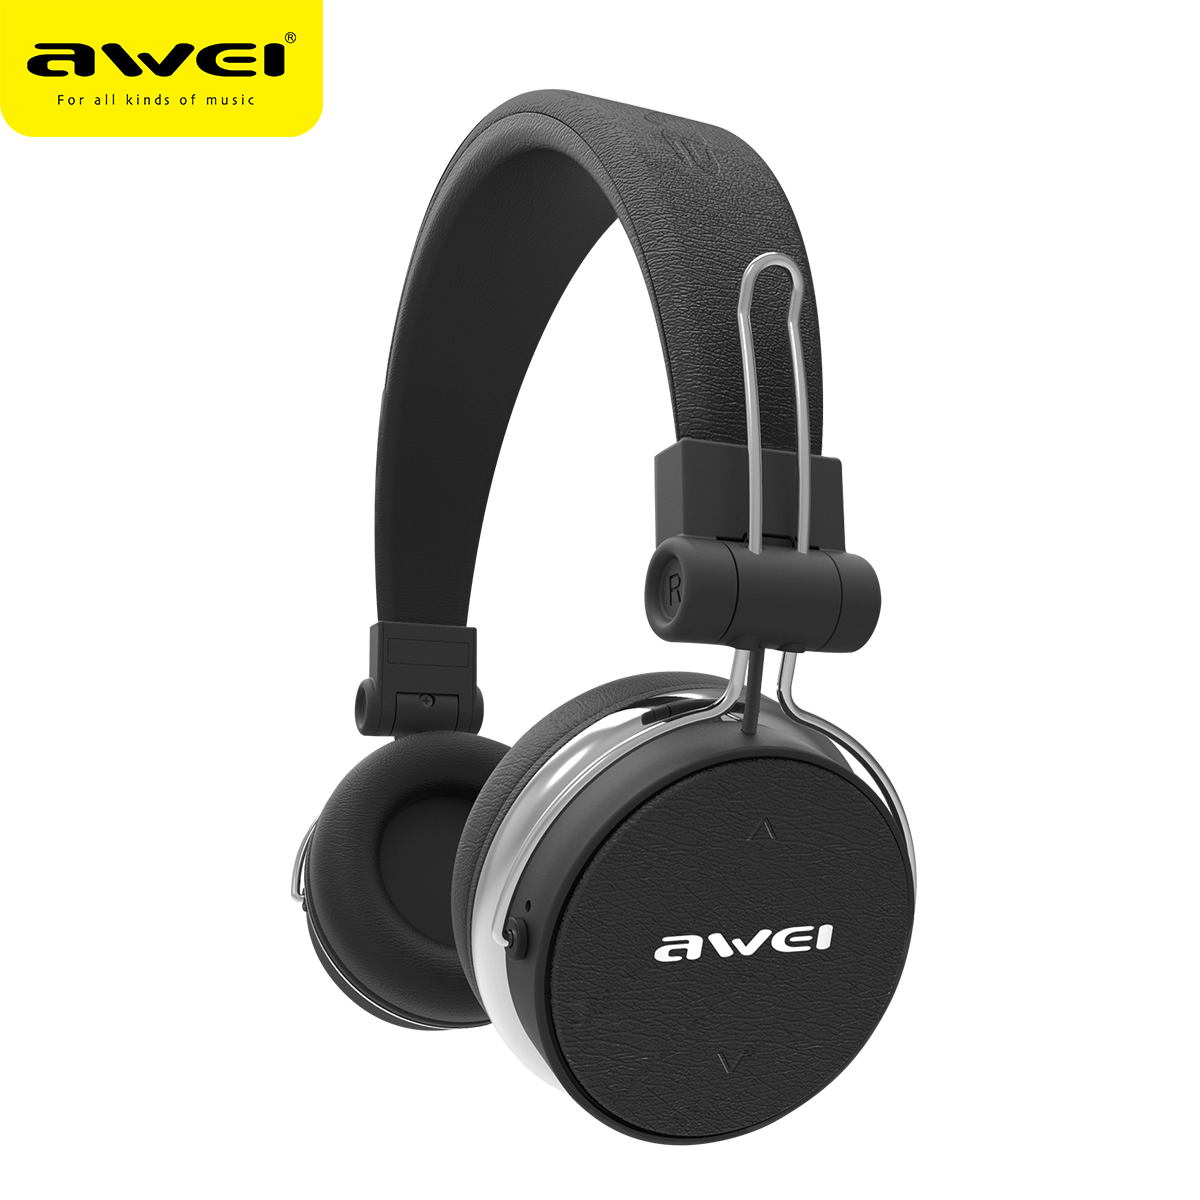 AWEI A700BL Bluetooth Headphone With Microphone Wireless Earphone Cordless Headset Casque Earpiece For Cellphone Stereo Kulakl k awei es 10ty metal earphone stereo headset in ear noise reduction auriculares headphone with microphone for phone kulakl k